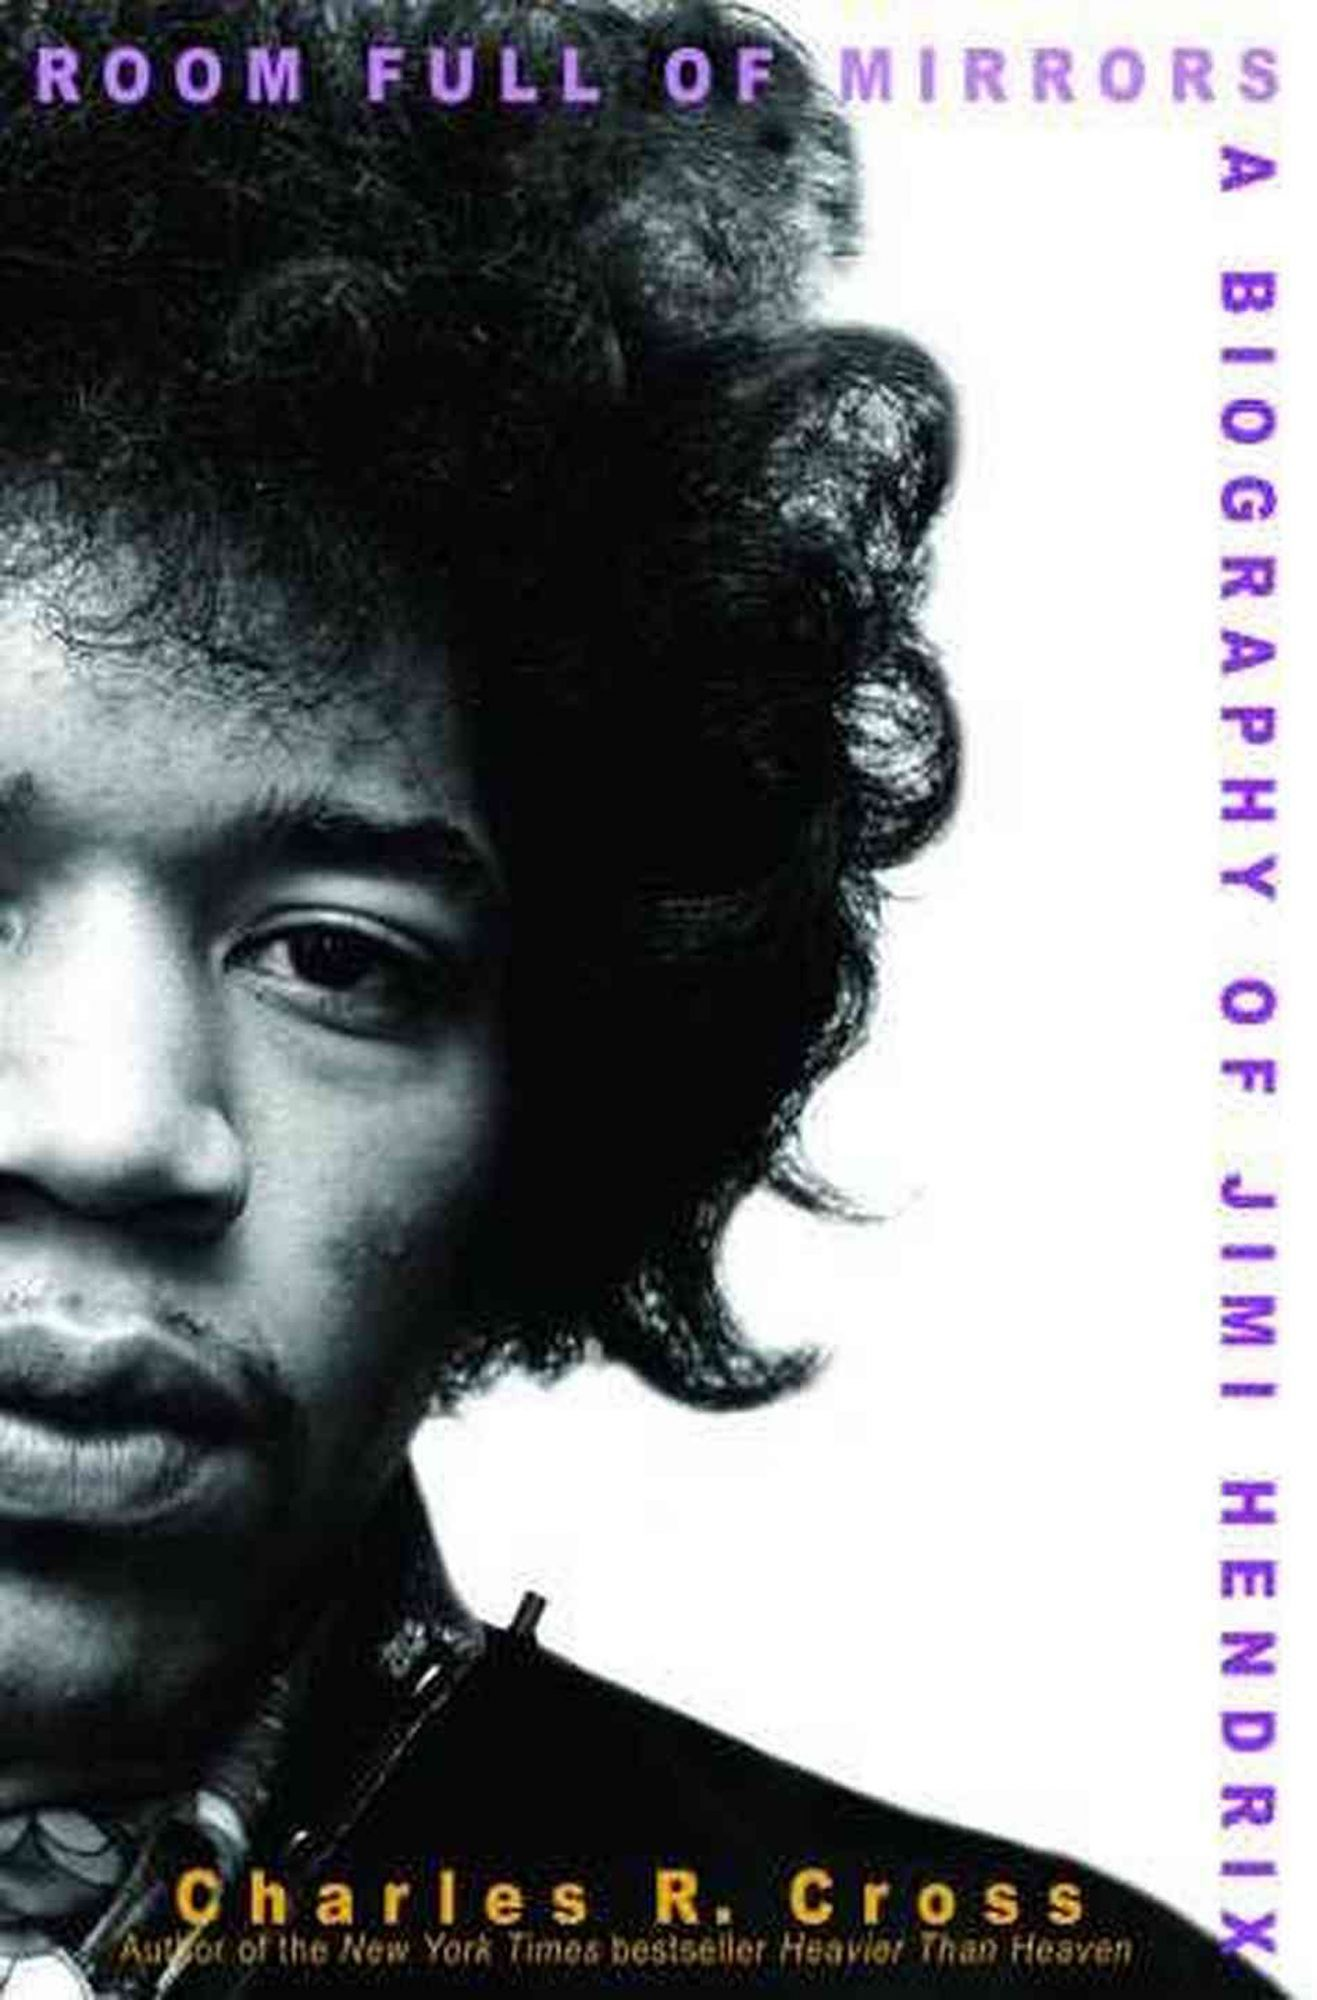 Room Full of Mirrors: A Biography of Jimi Hendrix by Charles R. Cross